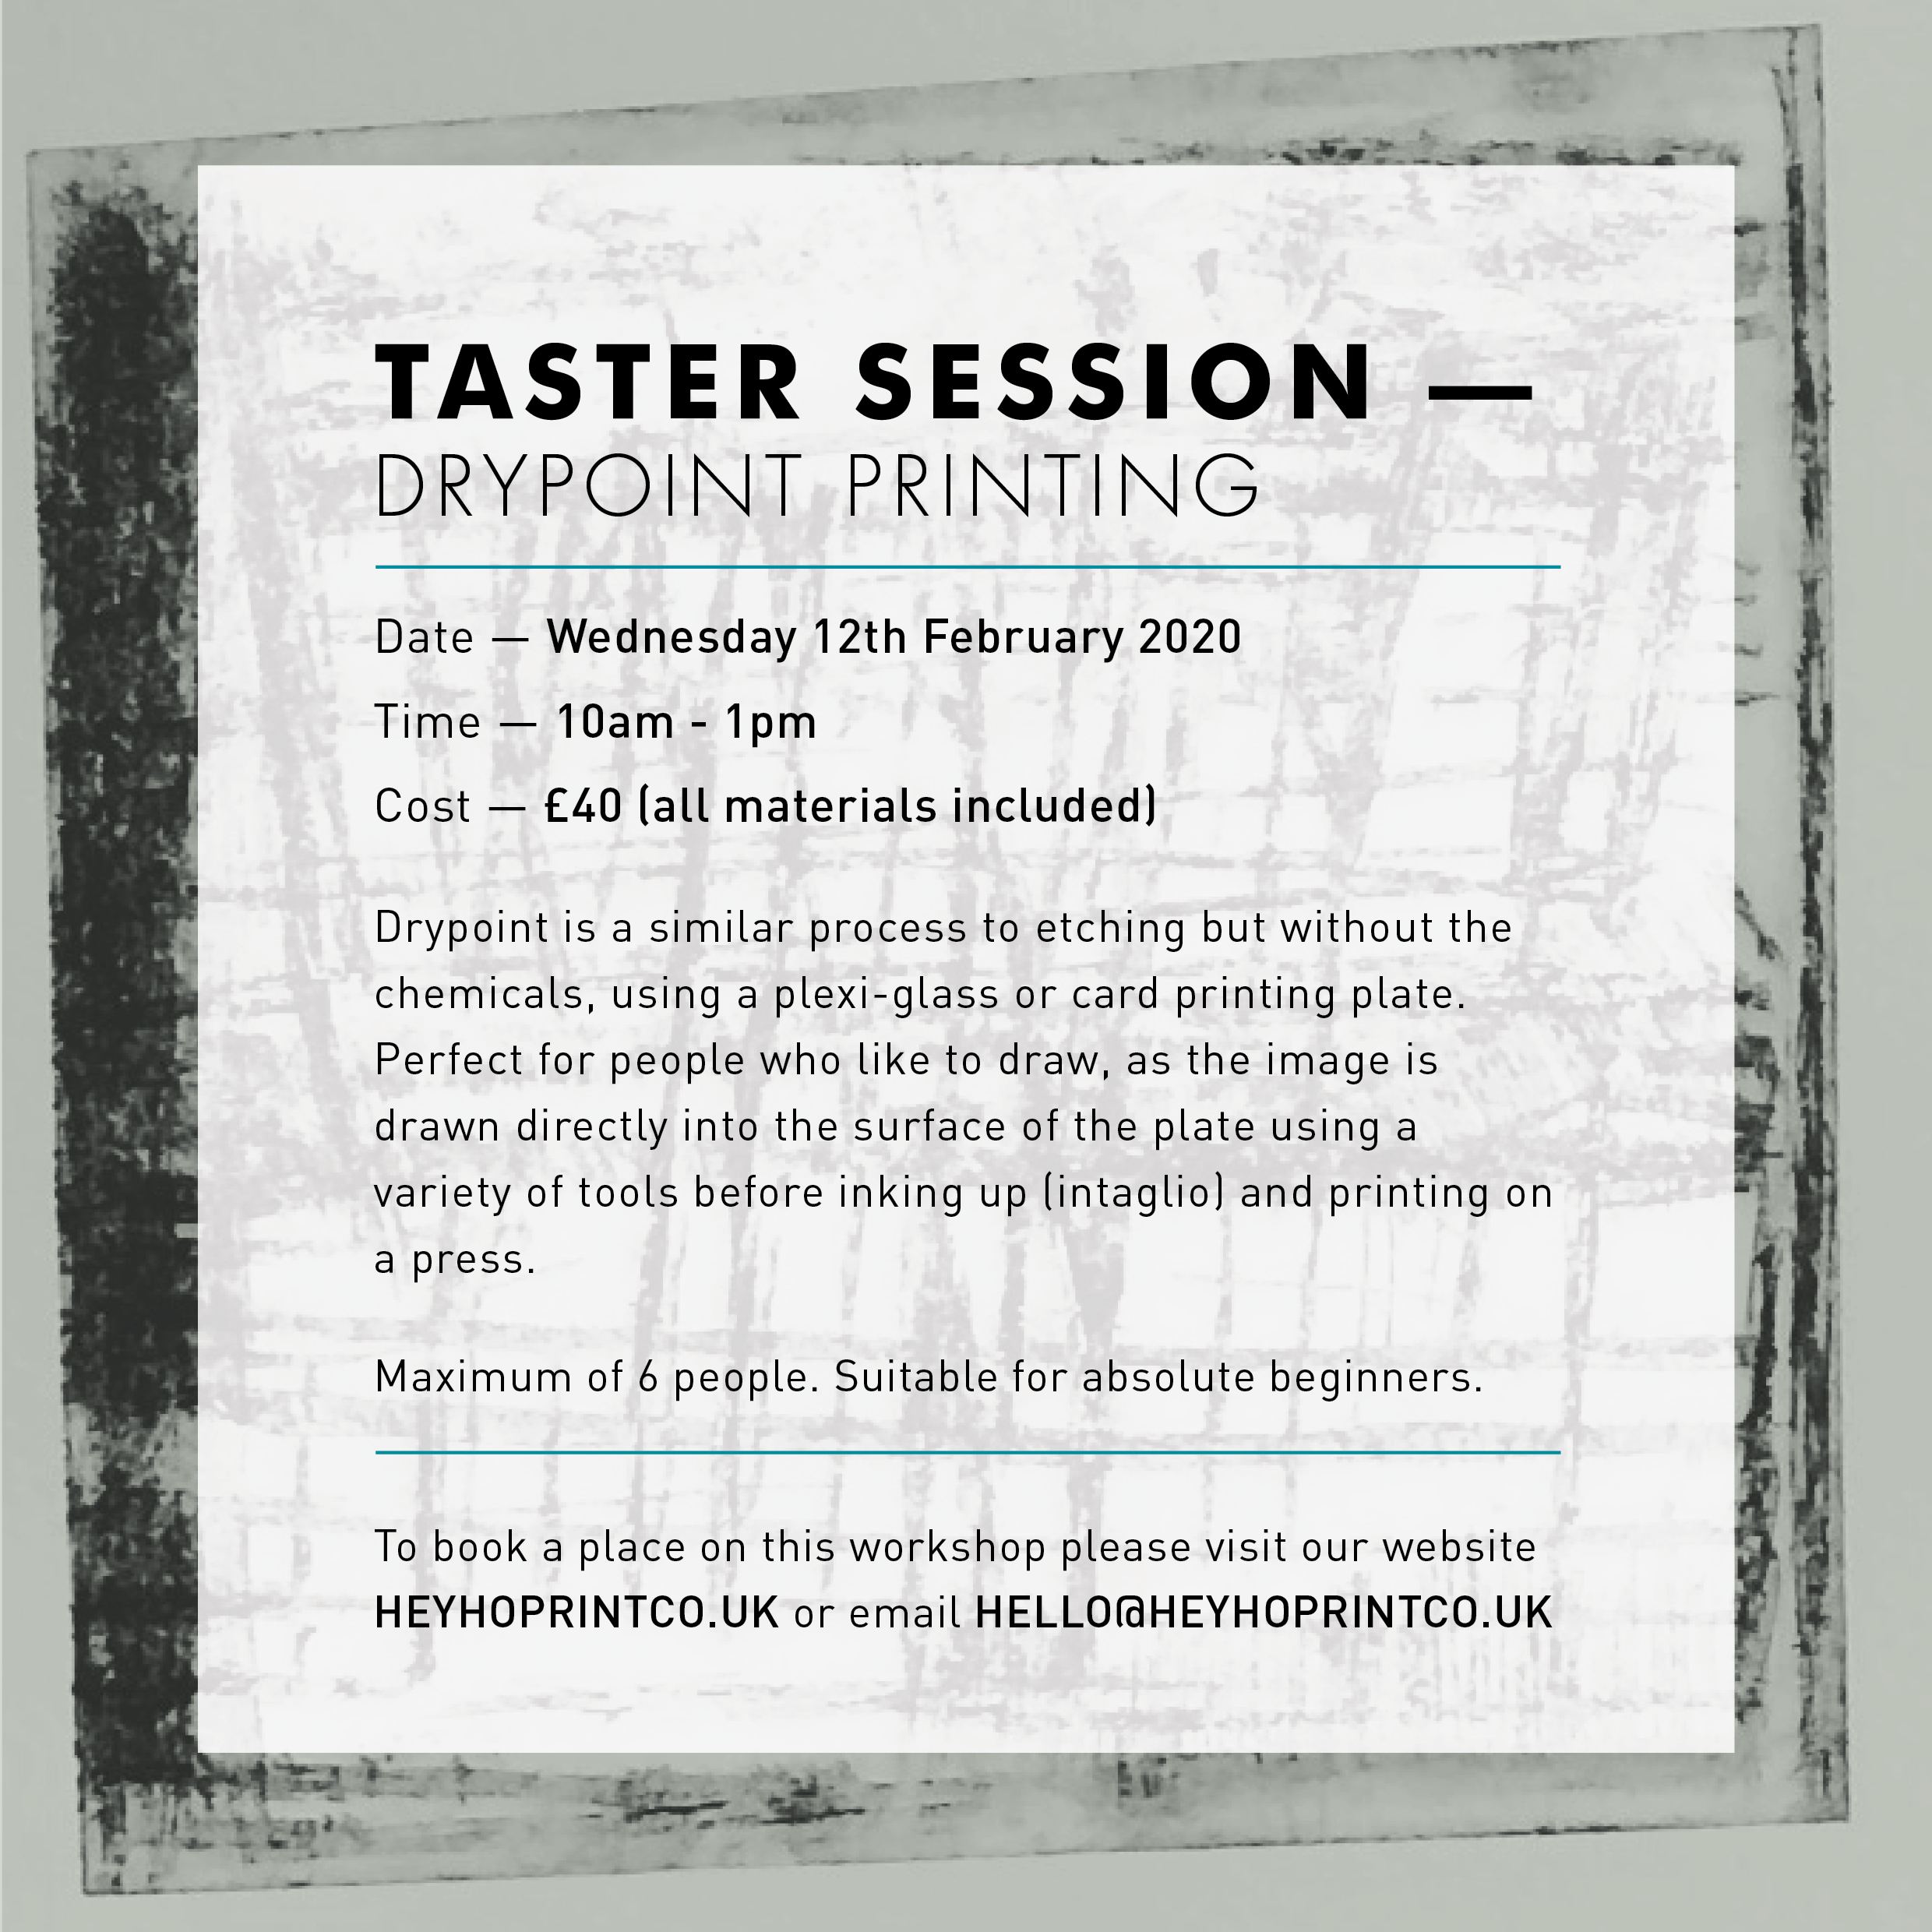 Drypoint Printing - Taster course February 12th 2020